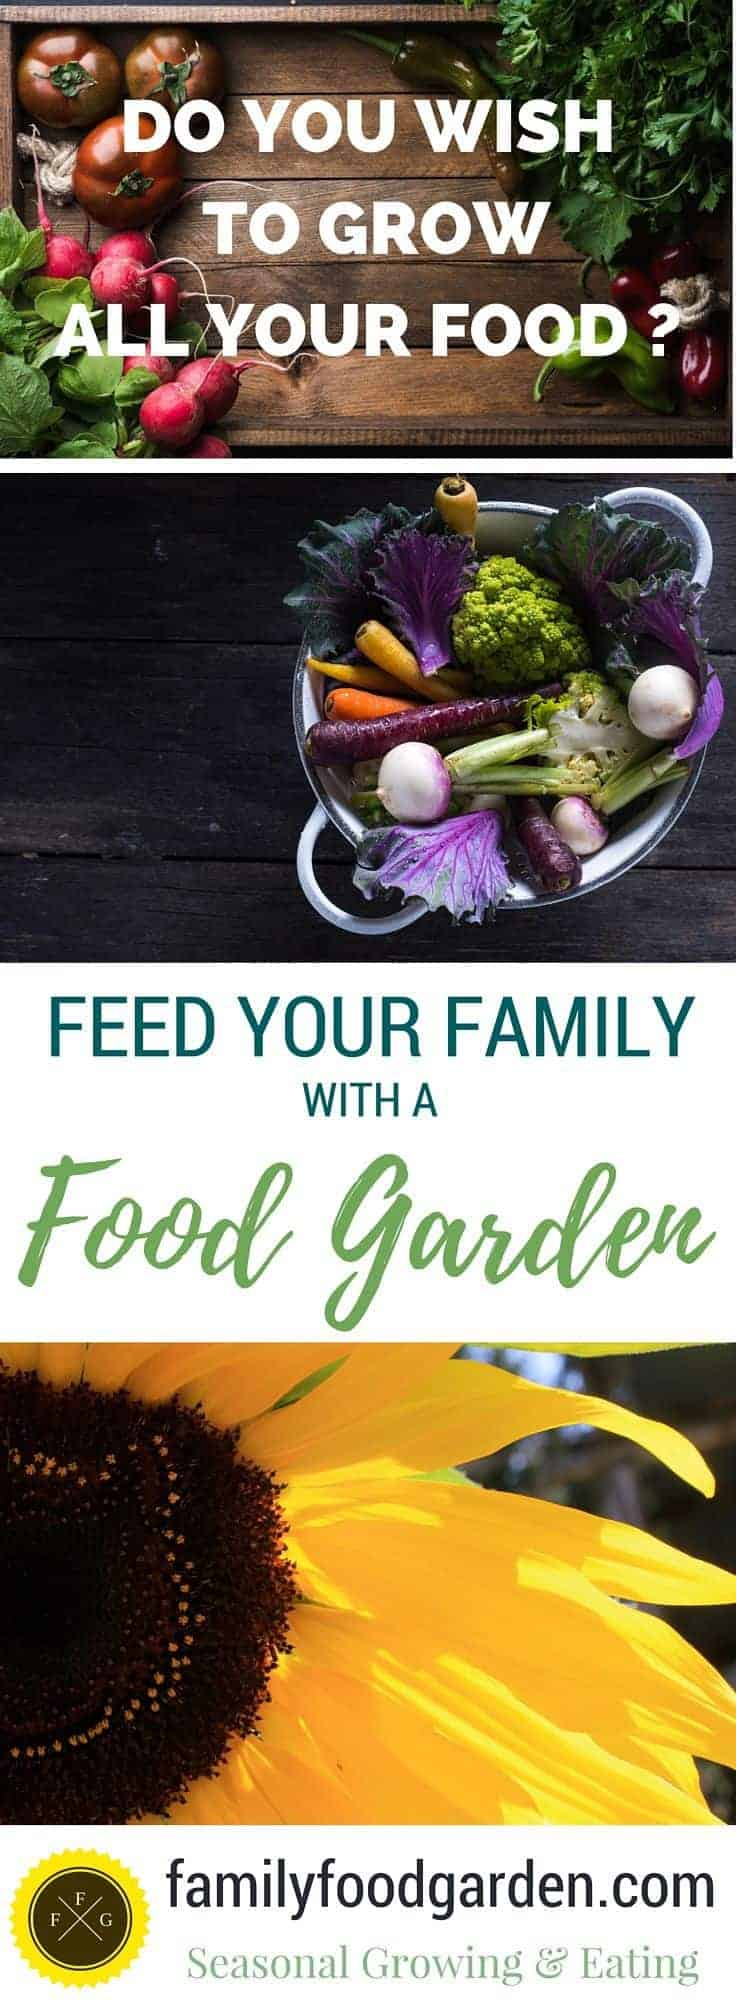 Food garden pictures - Inspiration For Growing Food On A Large Scale For Your Family